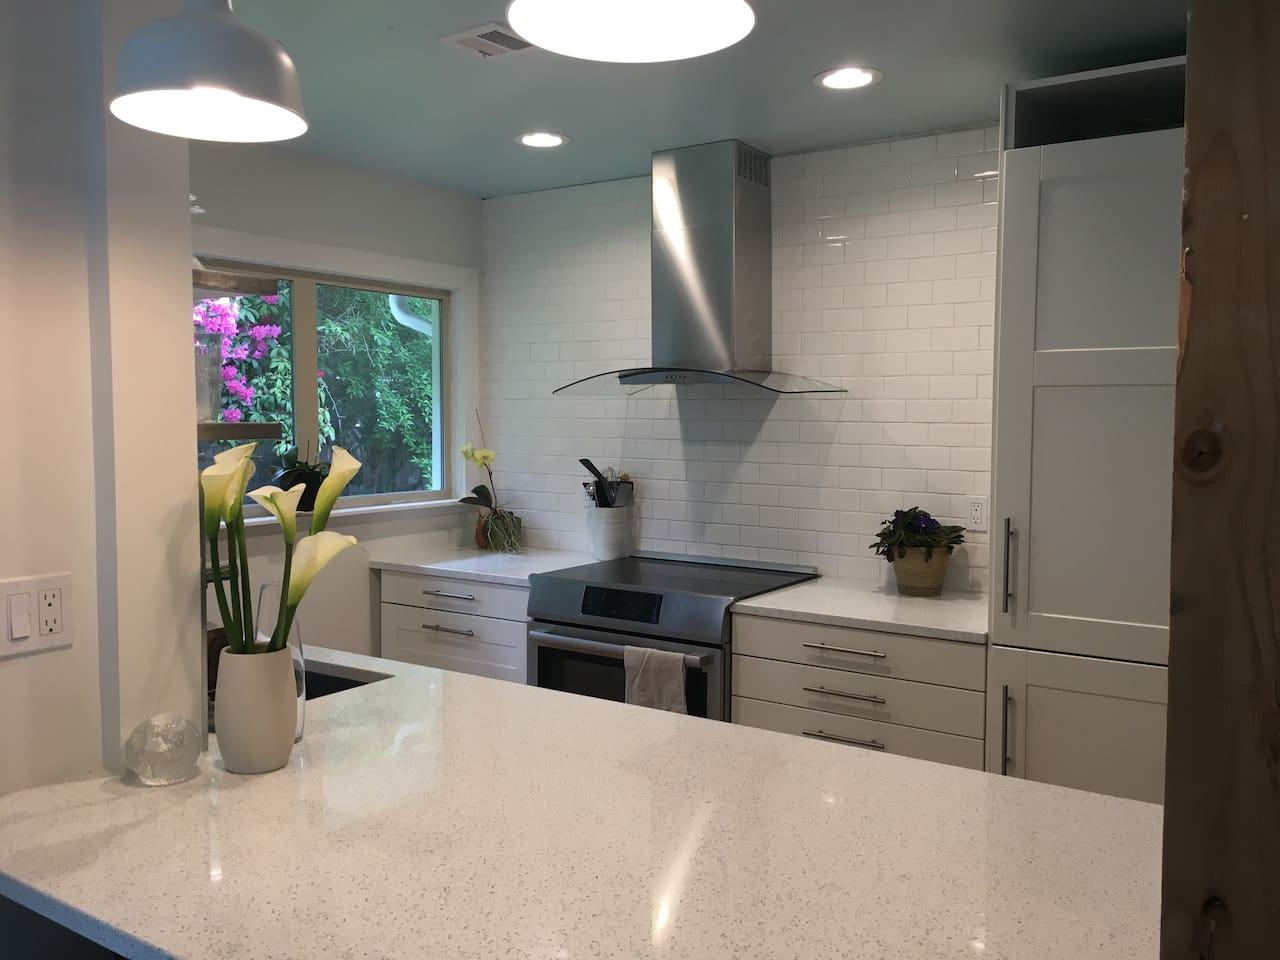 Remodeled kitchen with quartz countertops